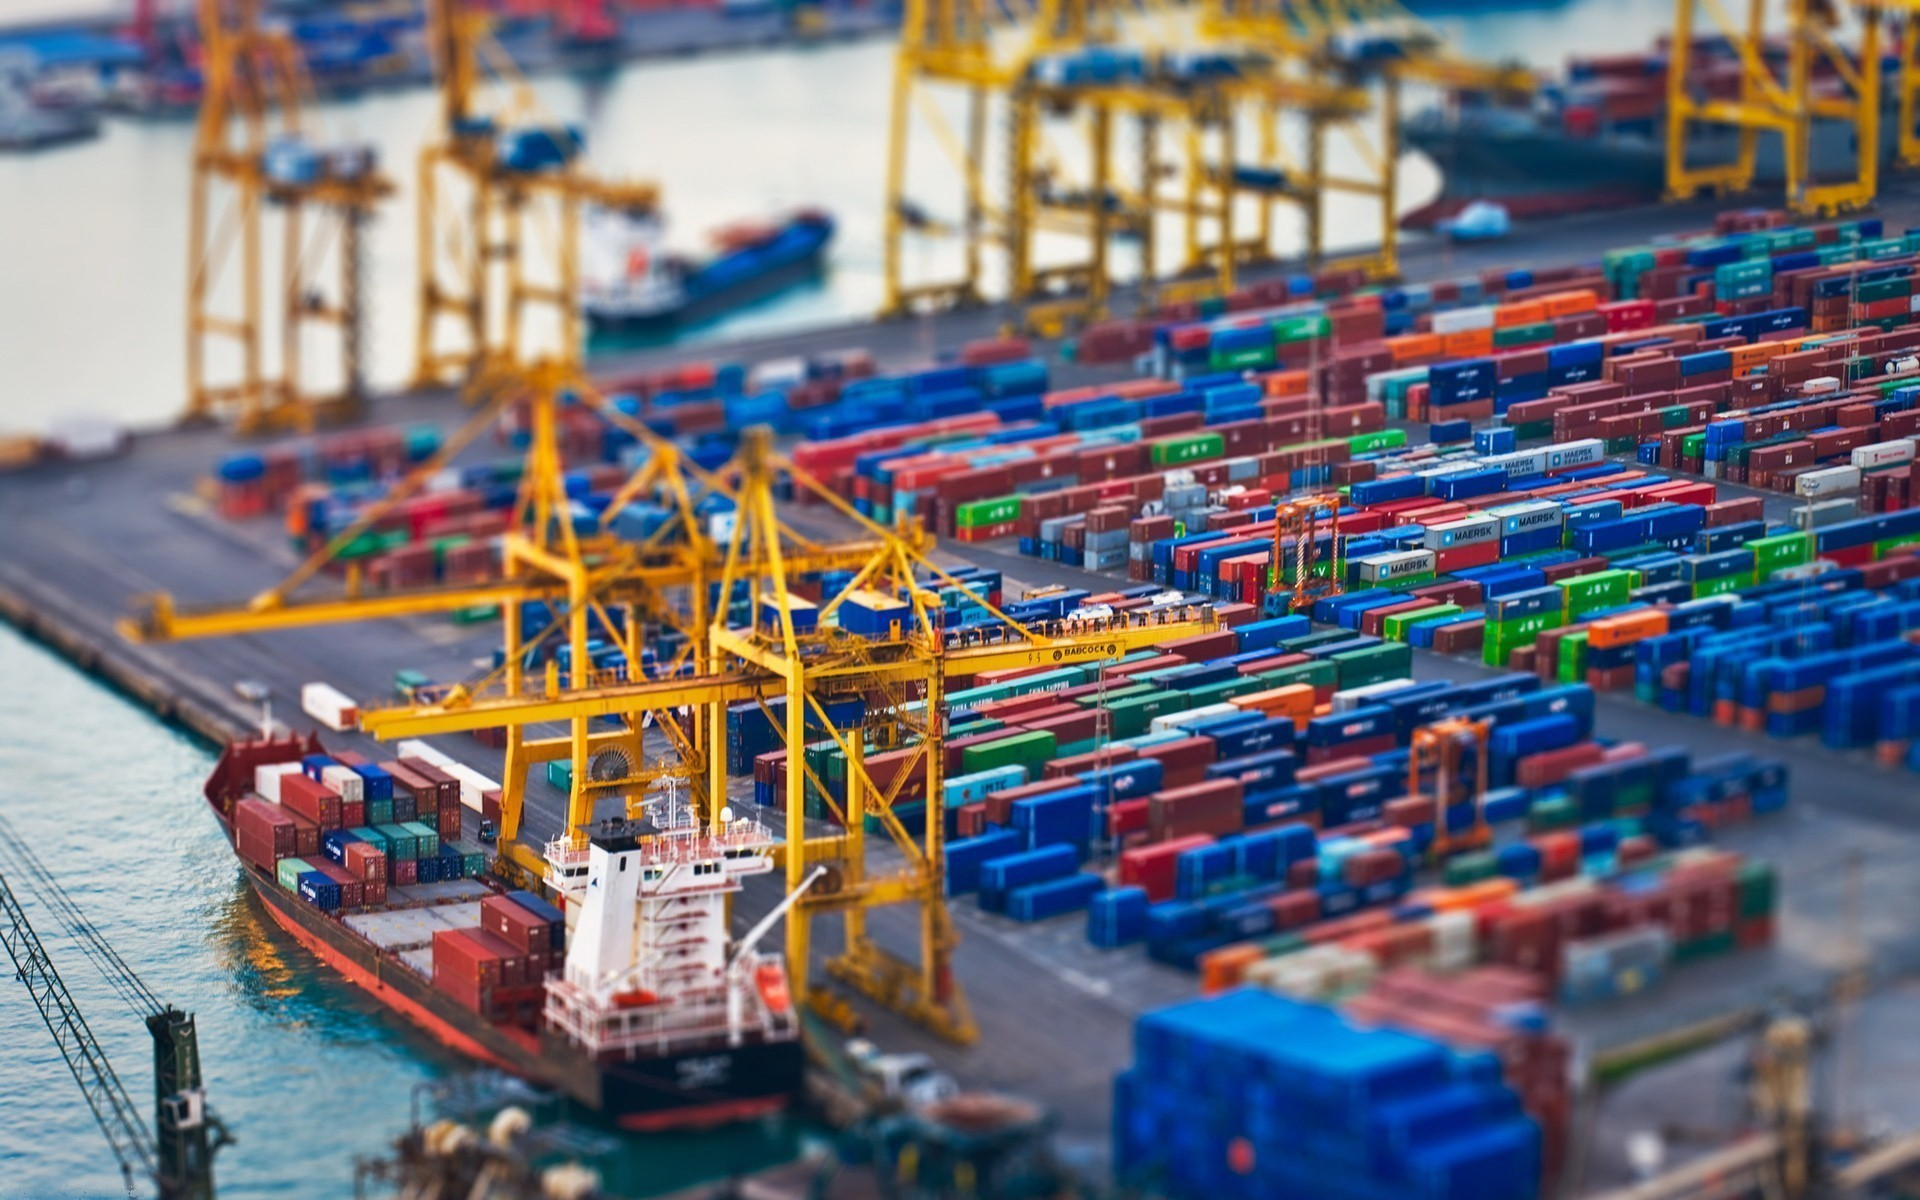 shipping-containers-ships-tilt-shift-vehicles-768650-1920x1200.jpg